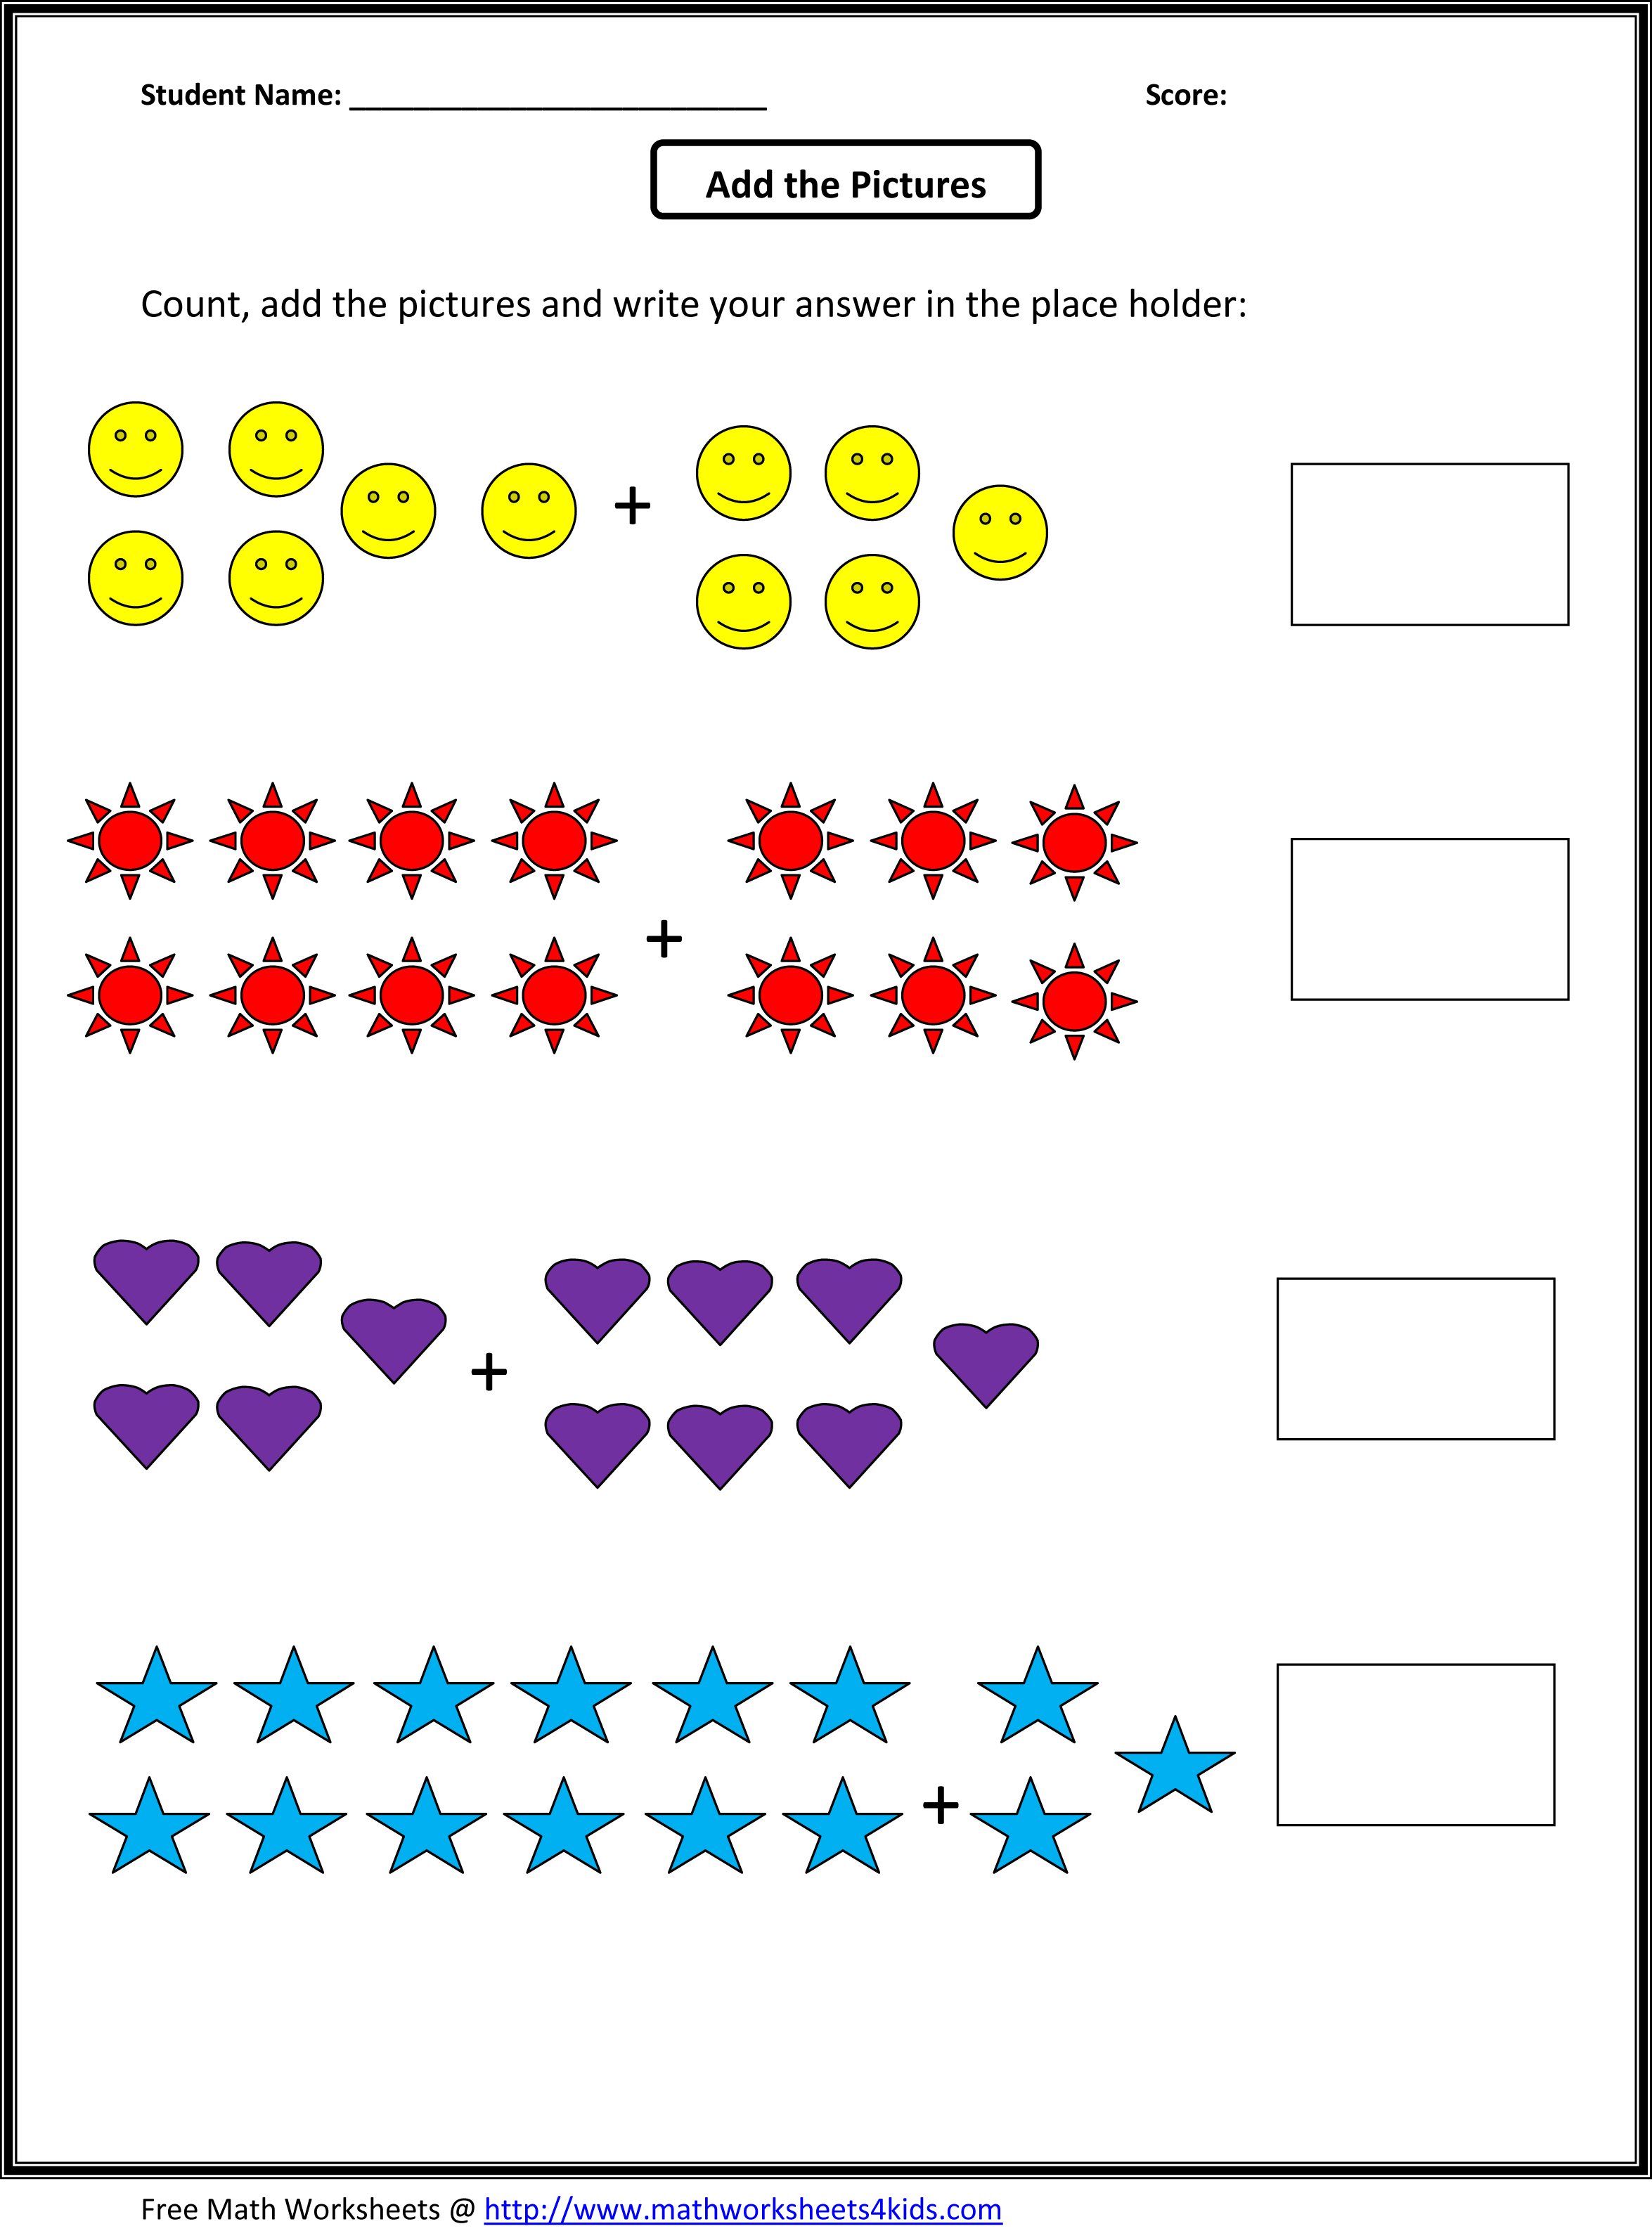 Proatmealus  Fascinating Grade  Maths Worksheet  Reocurent With Fascinating Math Worksheets For St Grade Free  Reocurent With Cute Dividing Mixed Numbers Worksheet Also How To Copy A Worksheet In Excel In Addition Decimal Division Worksheets And Average Atomic Mass Worksheet Show All Work As Well As Supplementary Angles Worksheet Additionally Maze Worksheets From Reocurentcom With Proatmealus  Fascinating Grade  Maths Worksheet  Reocurent With Cute Math Worksheets For St Grade Free  Reocurent And Fascinating Dividing Mixed Numbers Worksheet Also How To Copy A Worksheet In Excel In Addition Decimal Division Worksheets From Reocurentcom